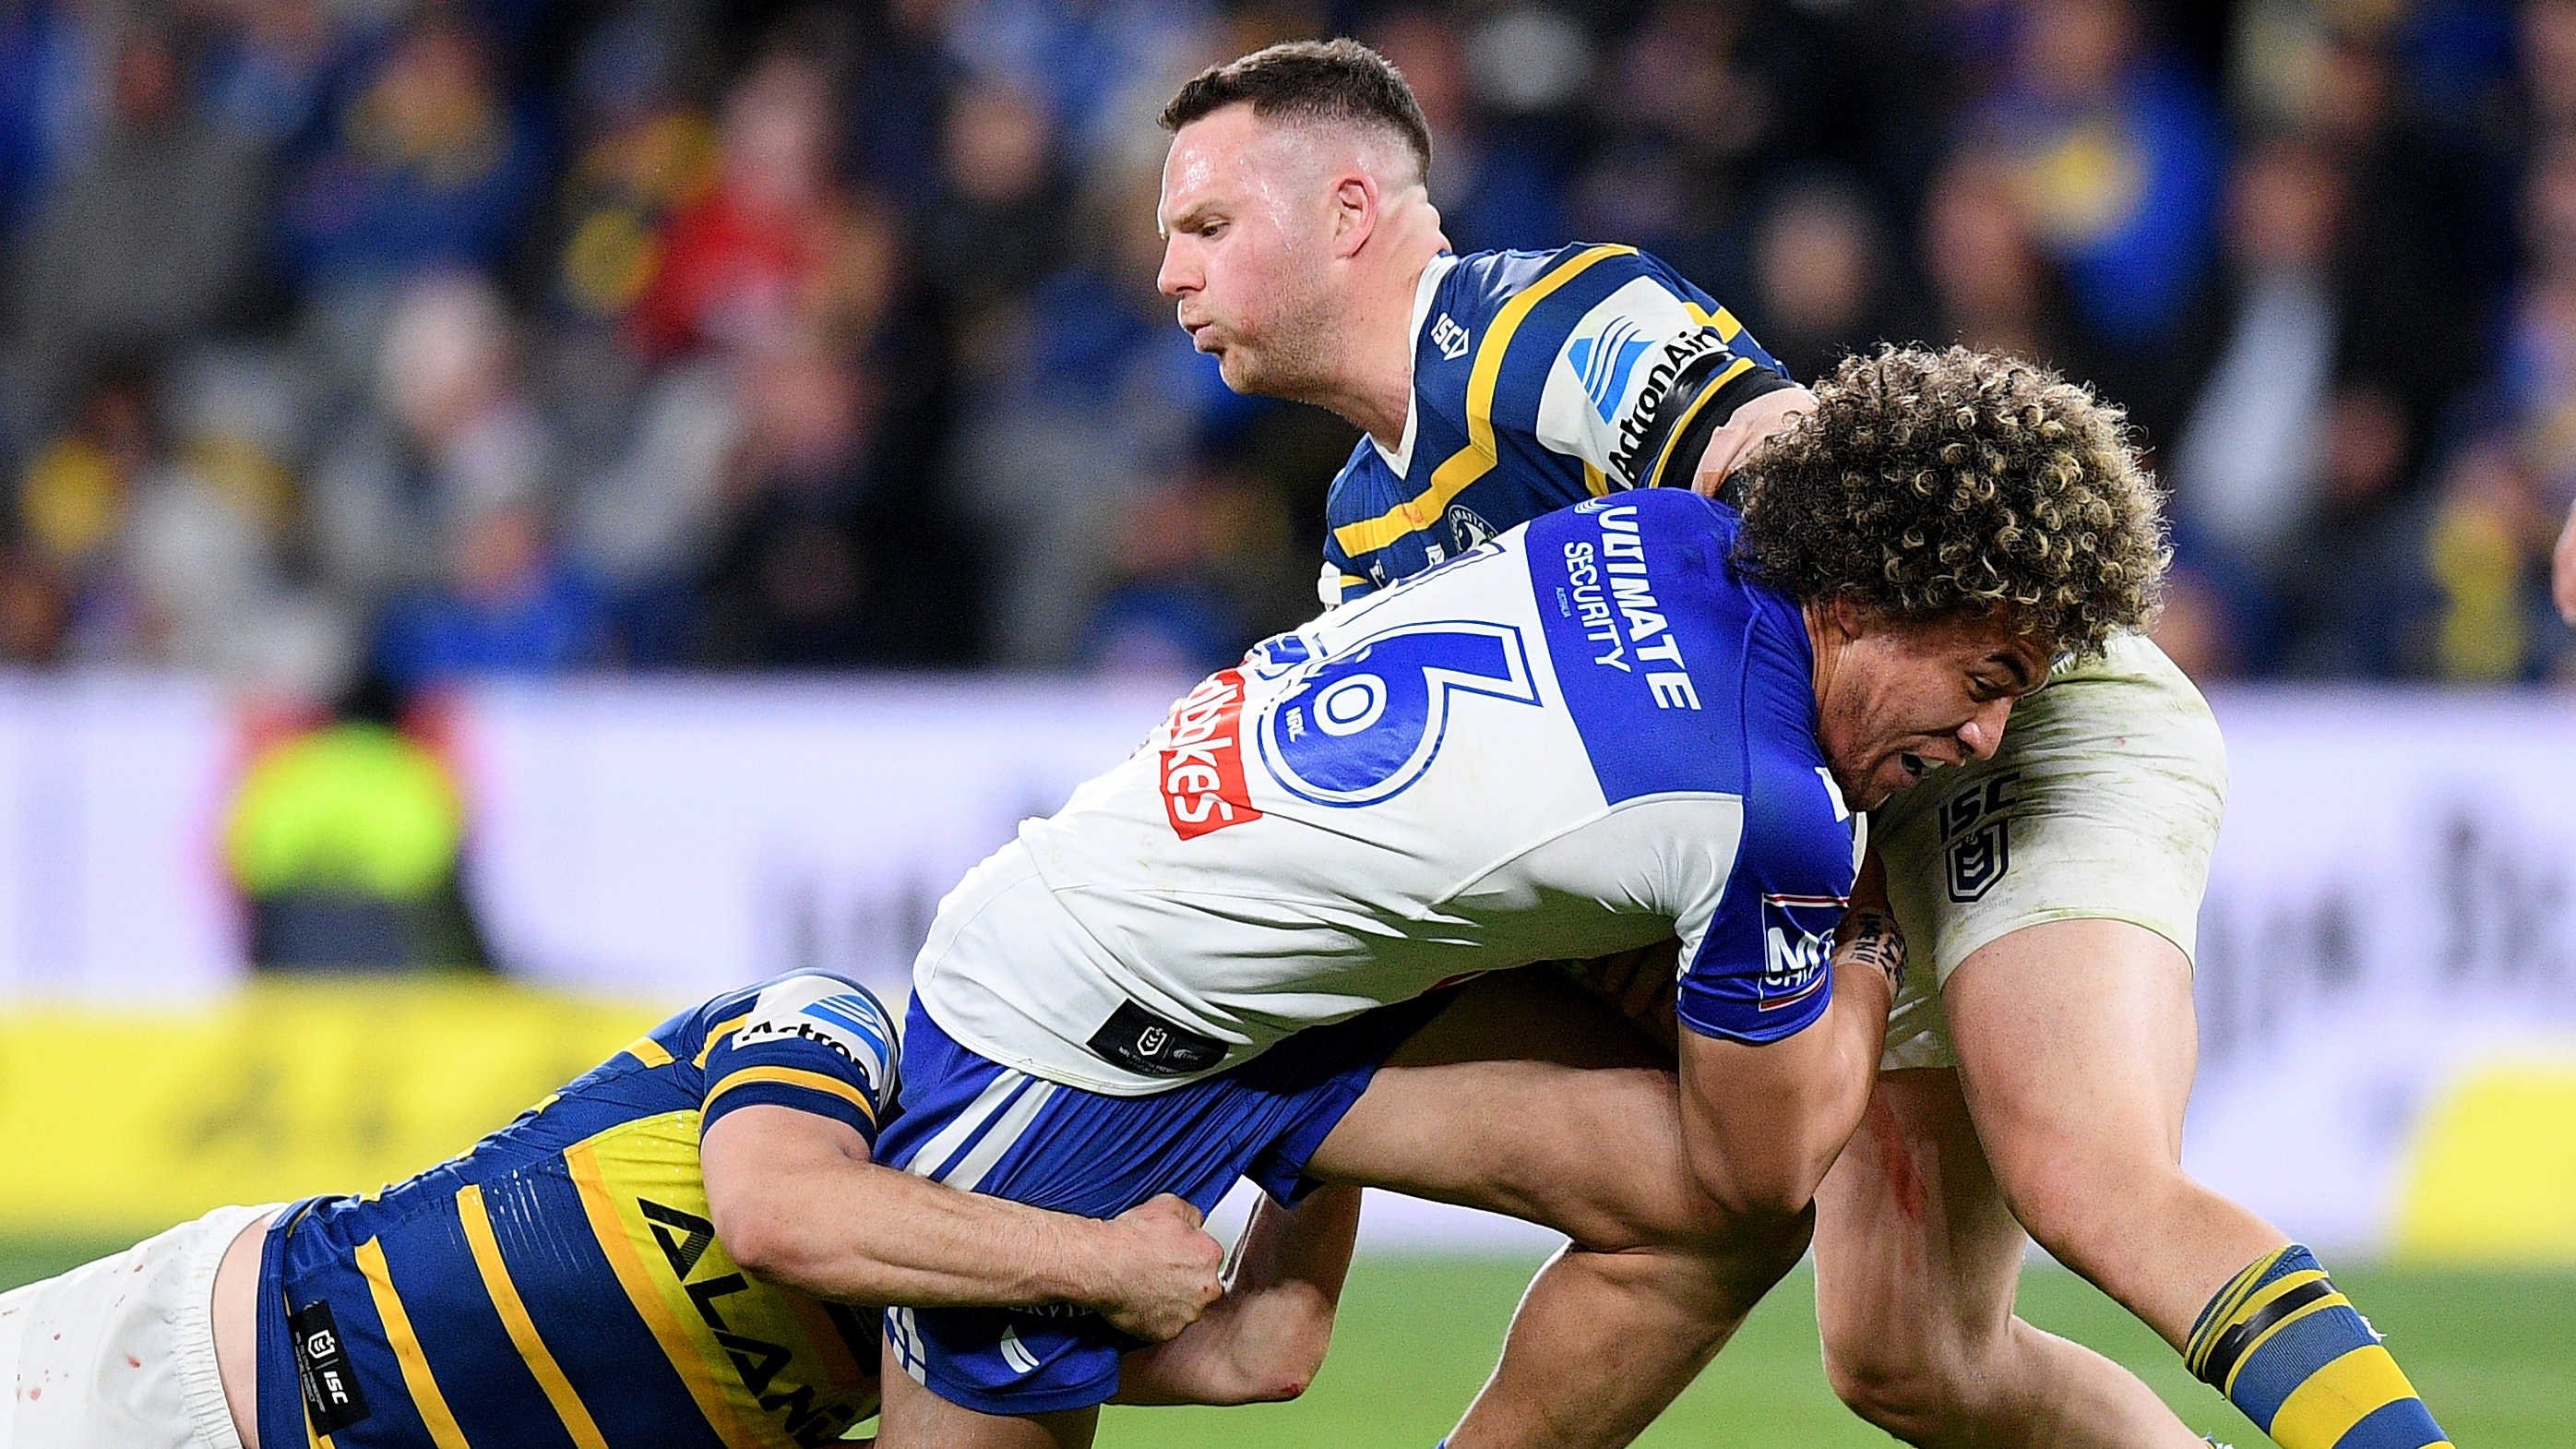 NRL Video 2019 | Highlights | Parramatta Eels v Canterbury-Bankstown Bulldogs - Round 23